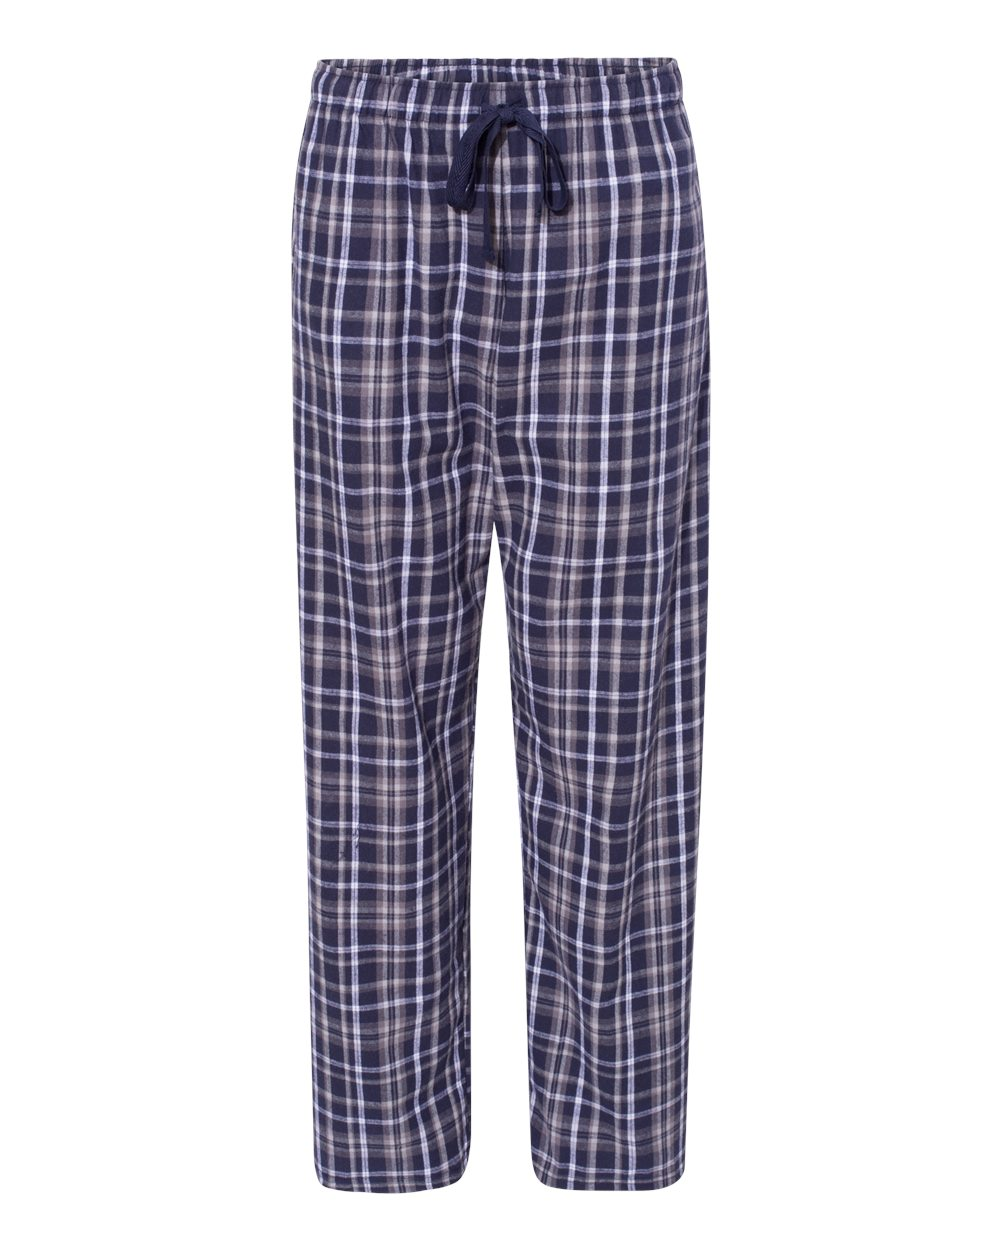 Boxercraft-Unisex-Flannel-Pants-With-Pockets-Pajama-Pants-F20-up-to-2XL thumbnail 30